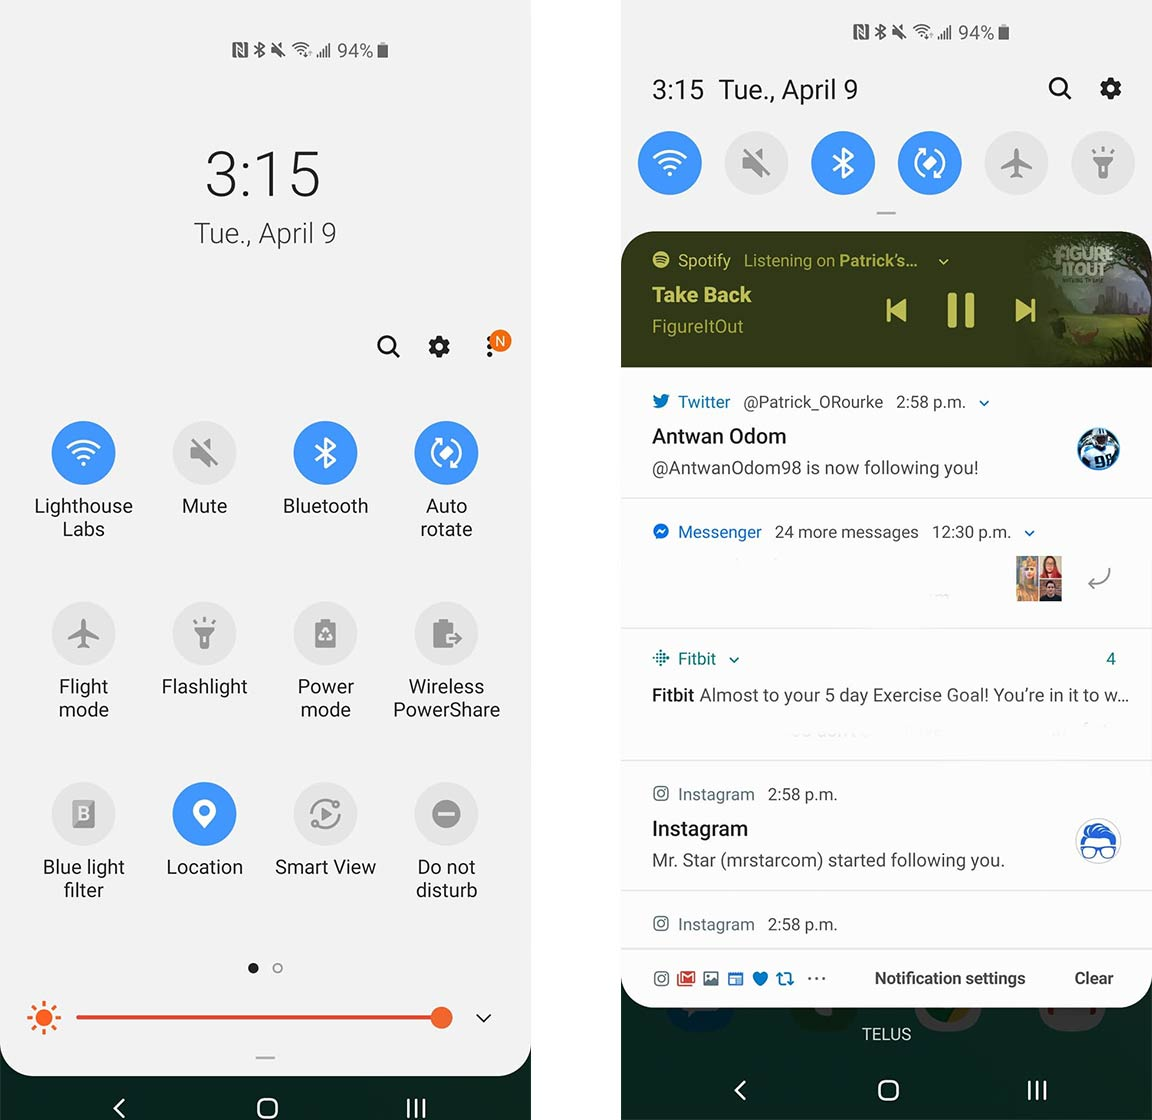 Samsung's One UI is one of the best Android user interfaces